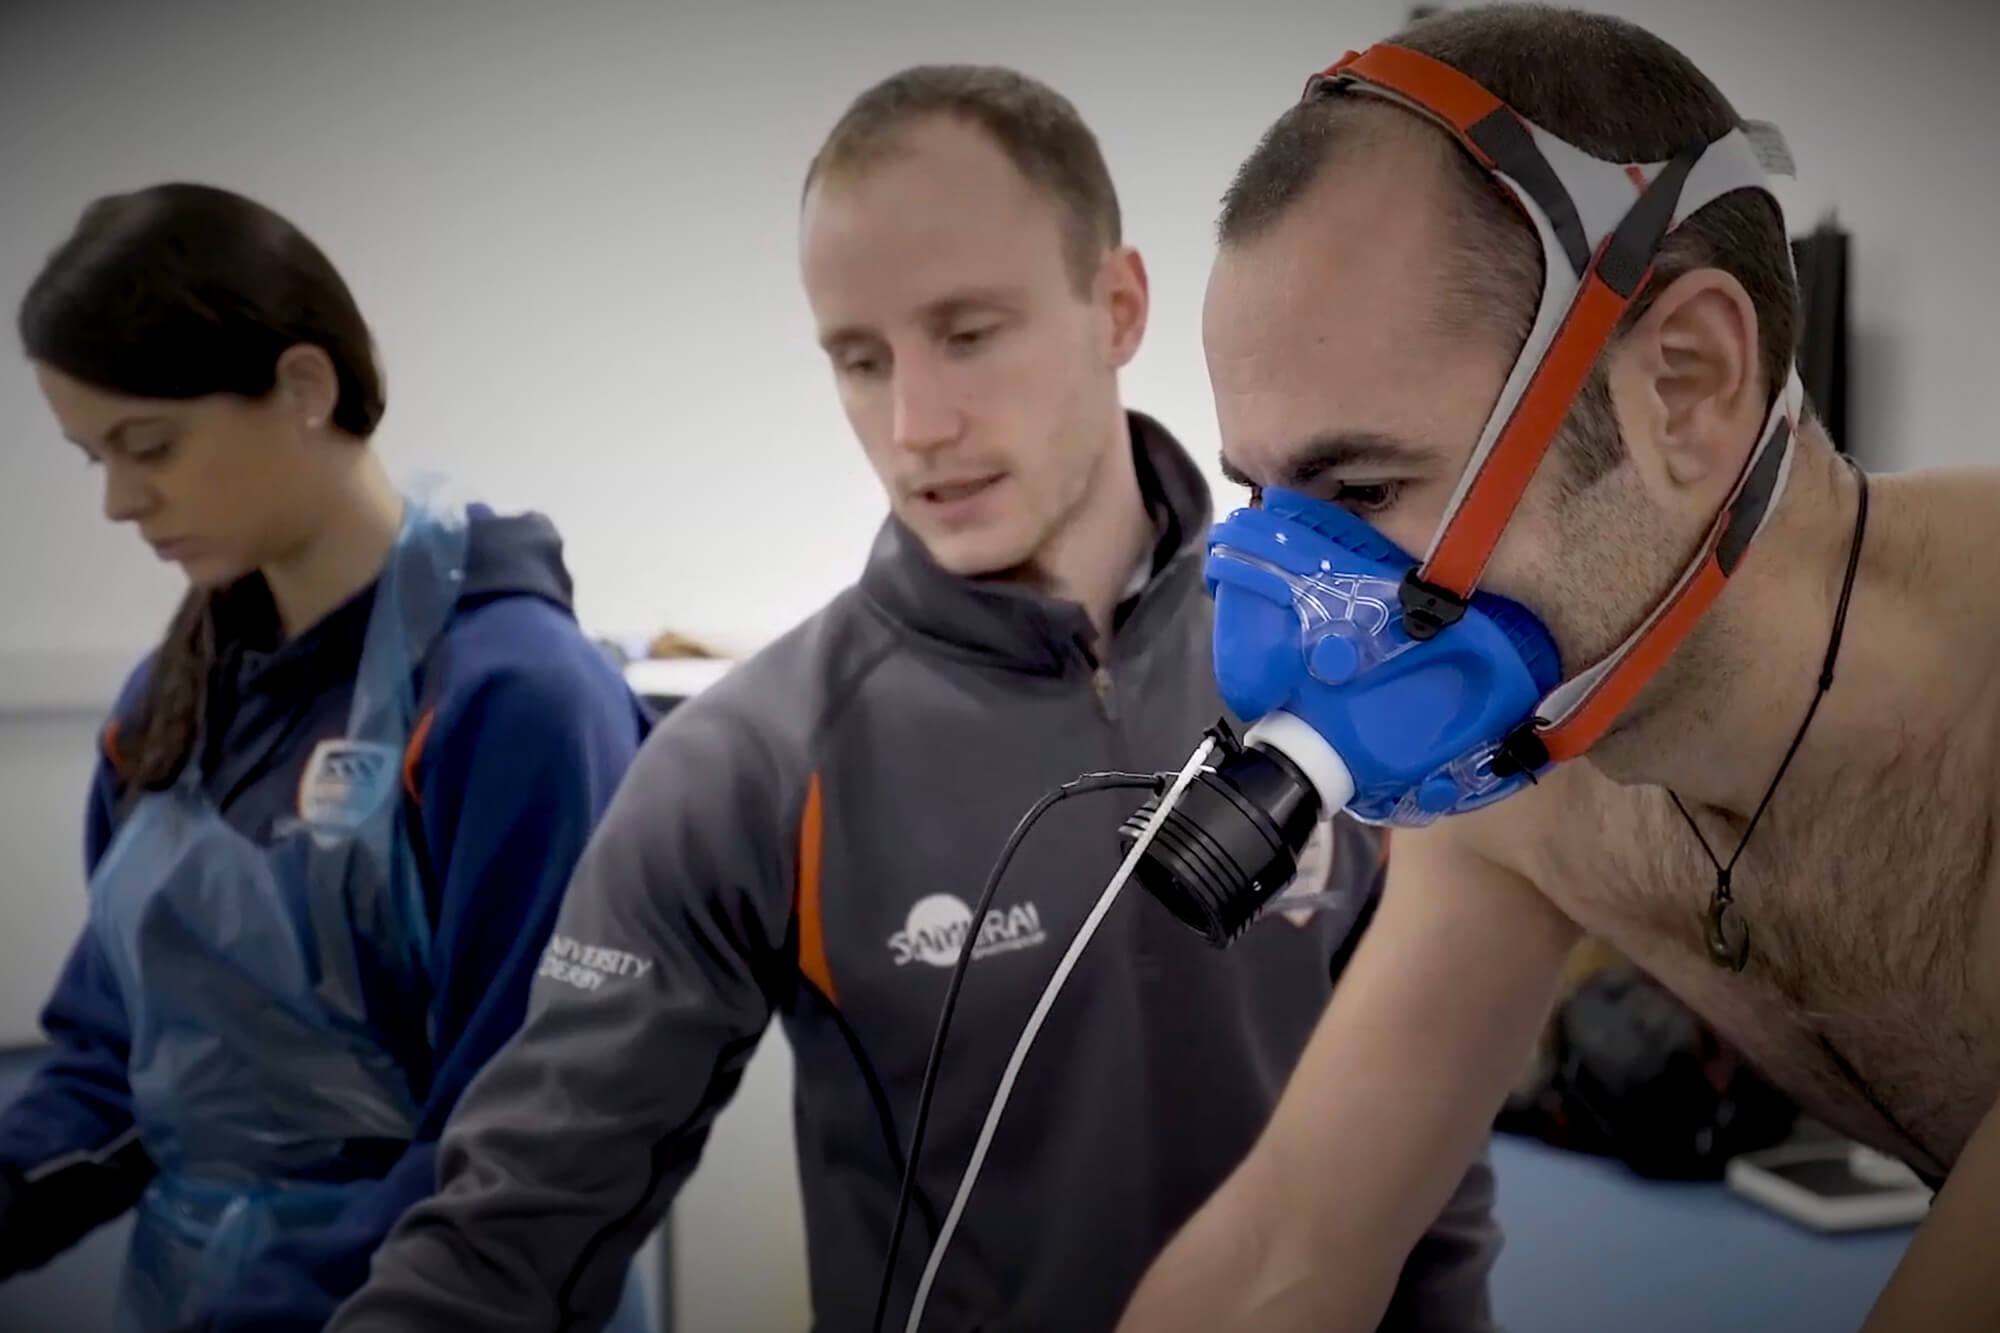 Mark Faghy carrying out tests with a cyclist wearing a breathing mask